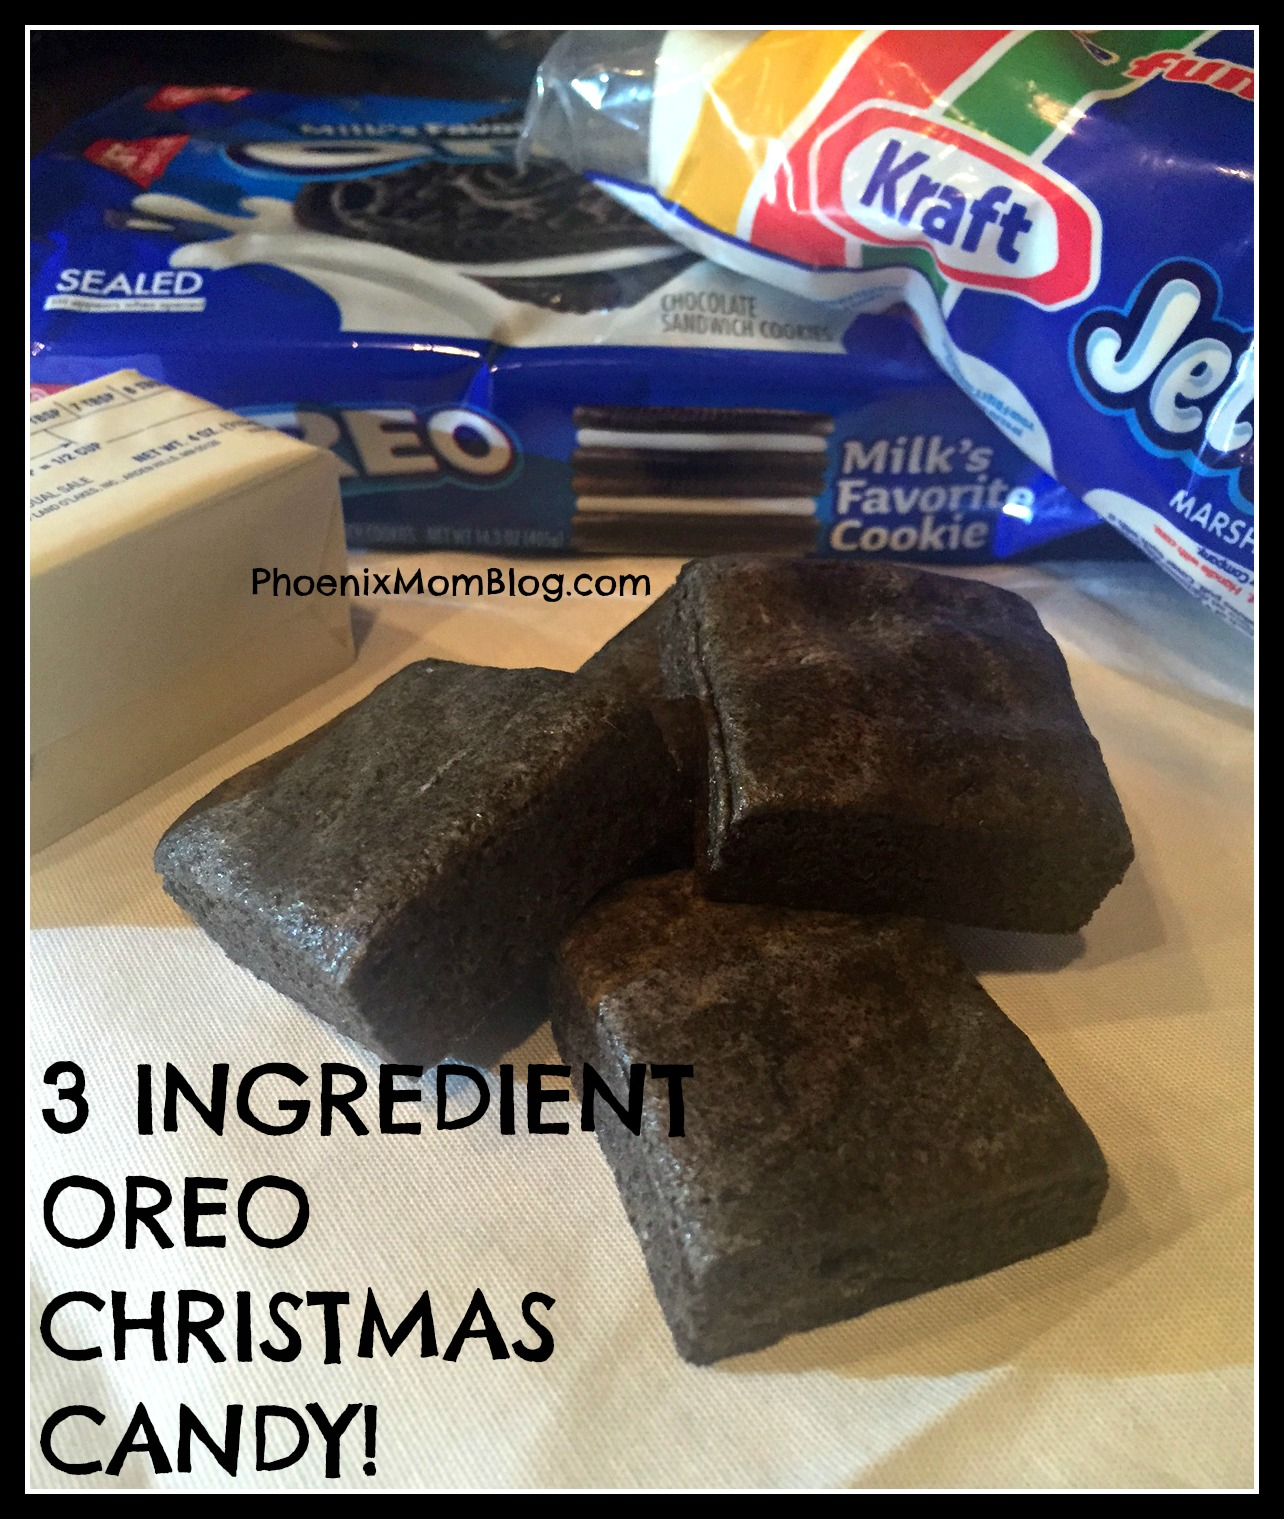 3 Ingredient Oreo Christmas Candy!